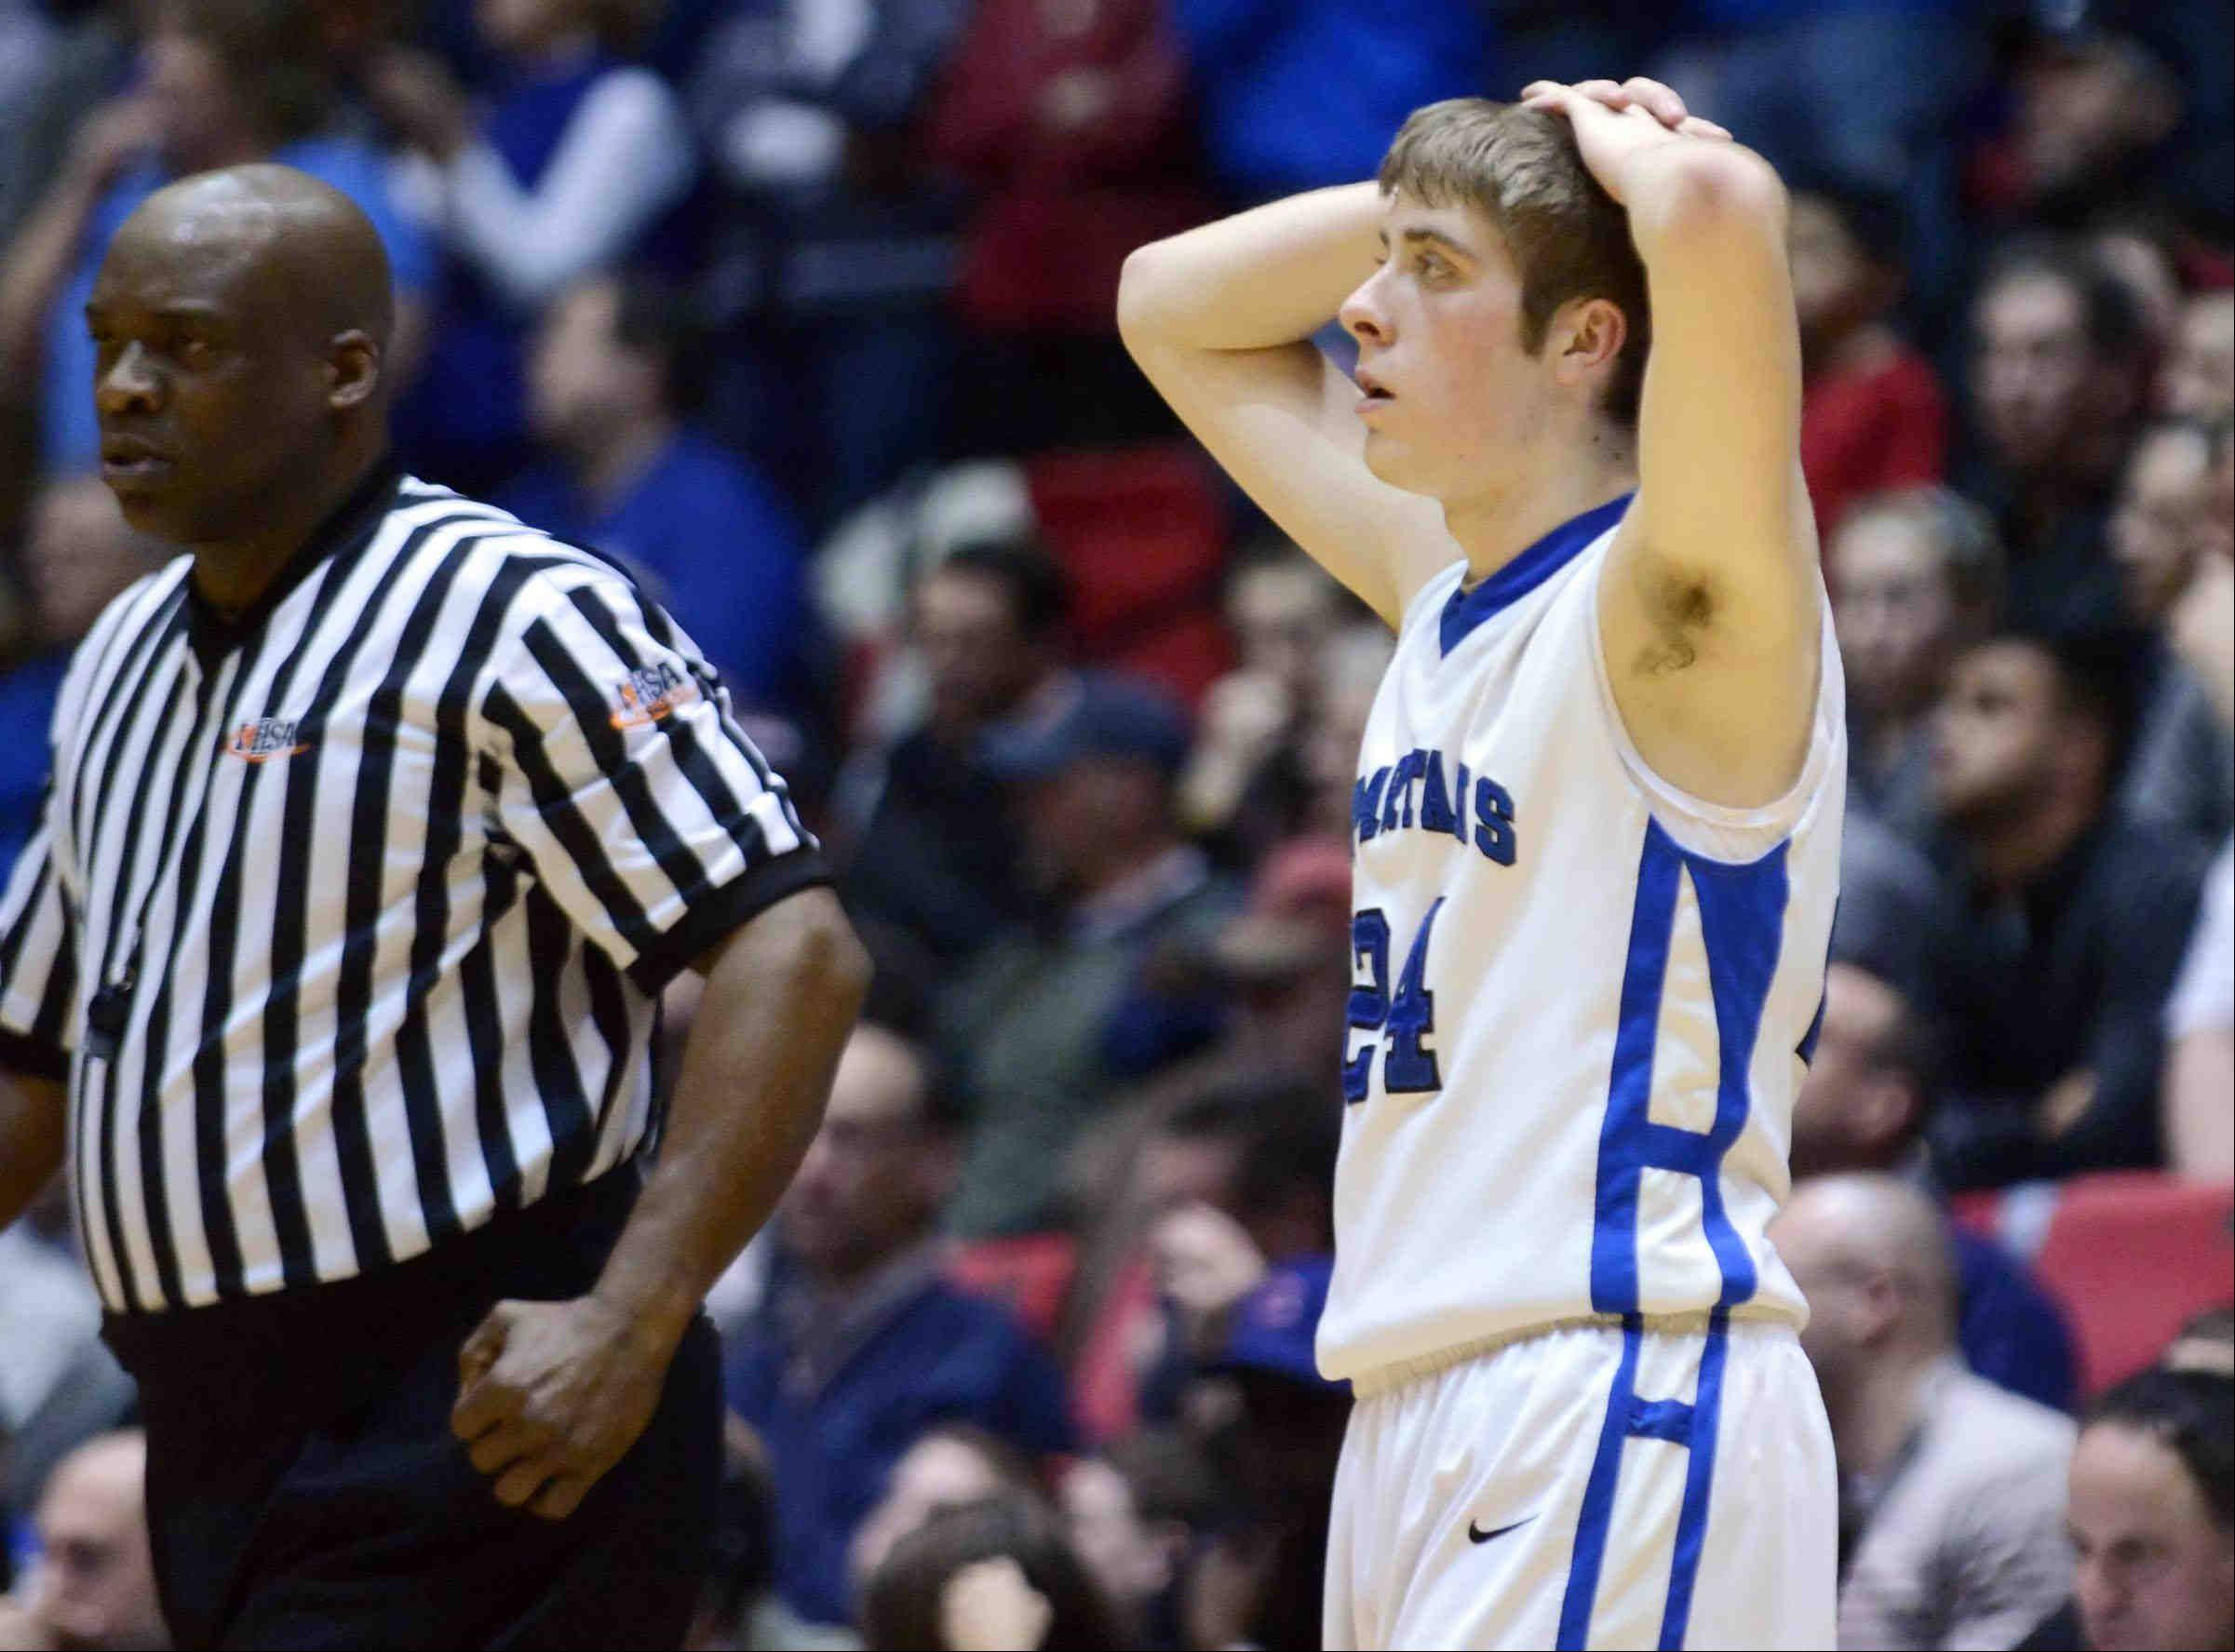 St. Francis' Matt Bonner reacts to committing his fifth foul near the end of the game against Bartonville Limestone Tuesday in the 3A Dekalb supersectional game at the Northern Illinois Convocation Center.